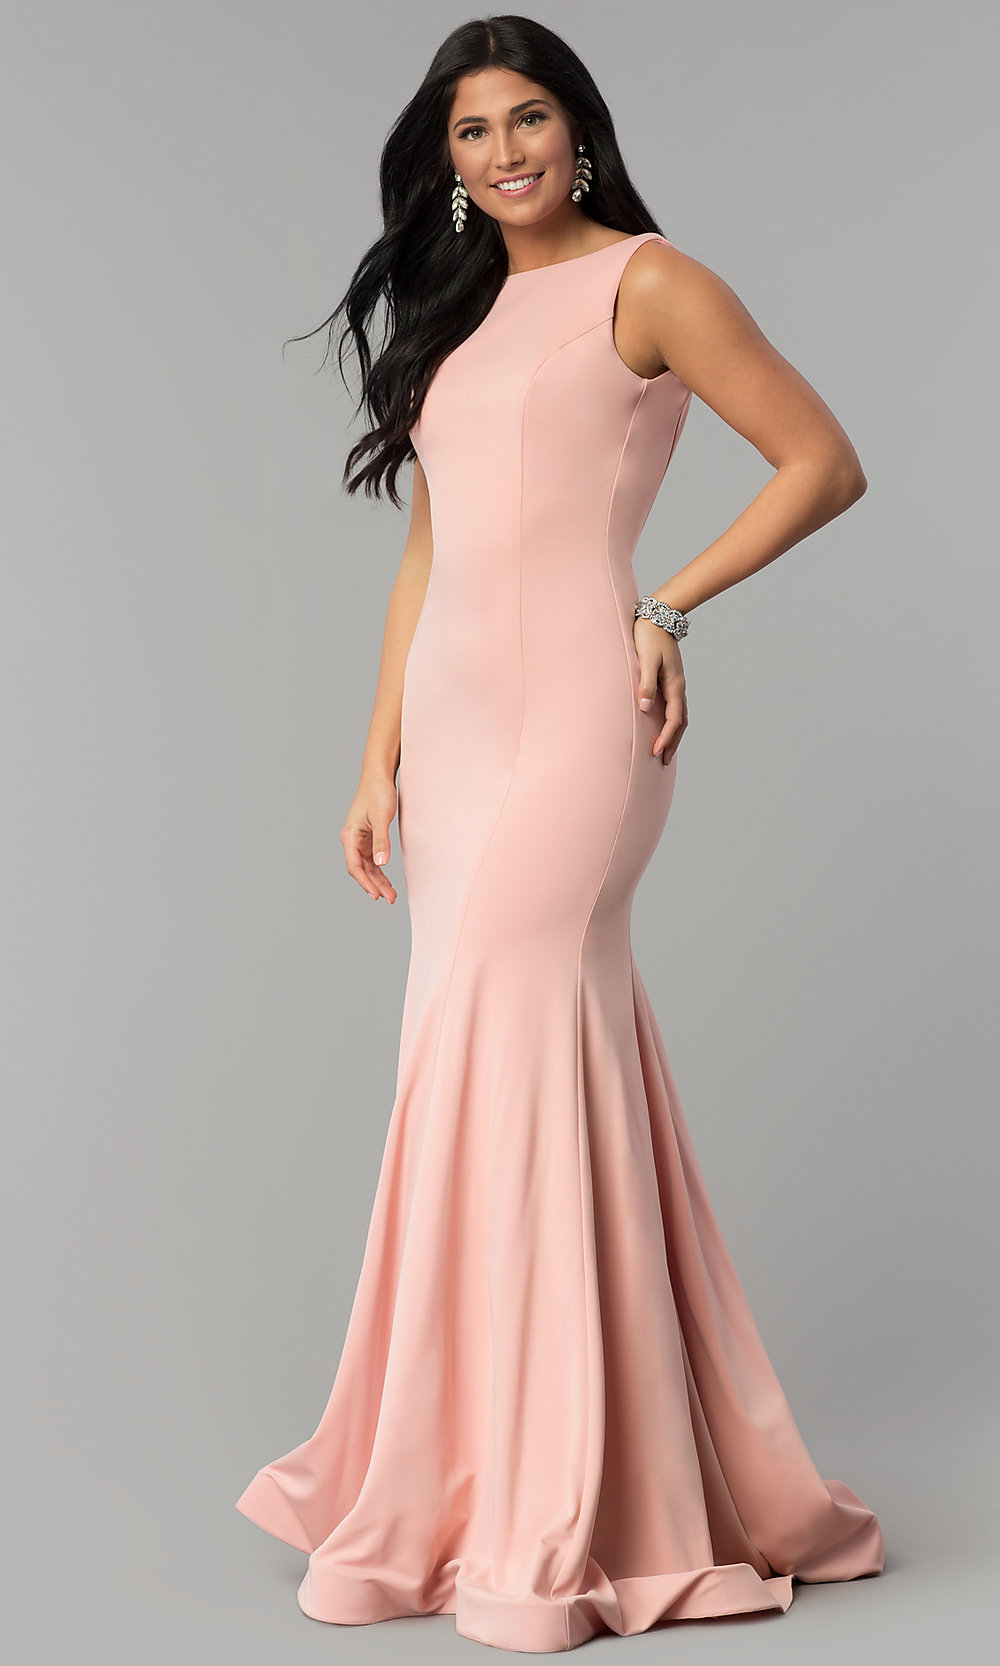 Mermaid Long Prom Dress with Godet Train - PromGirl